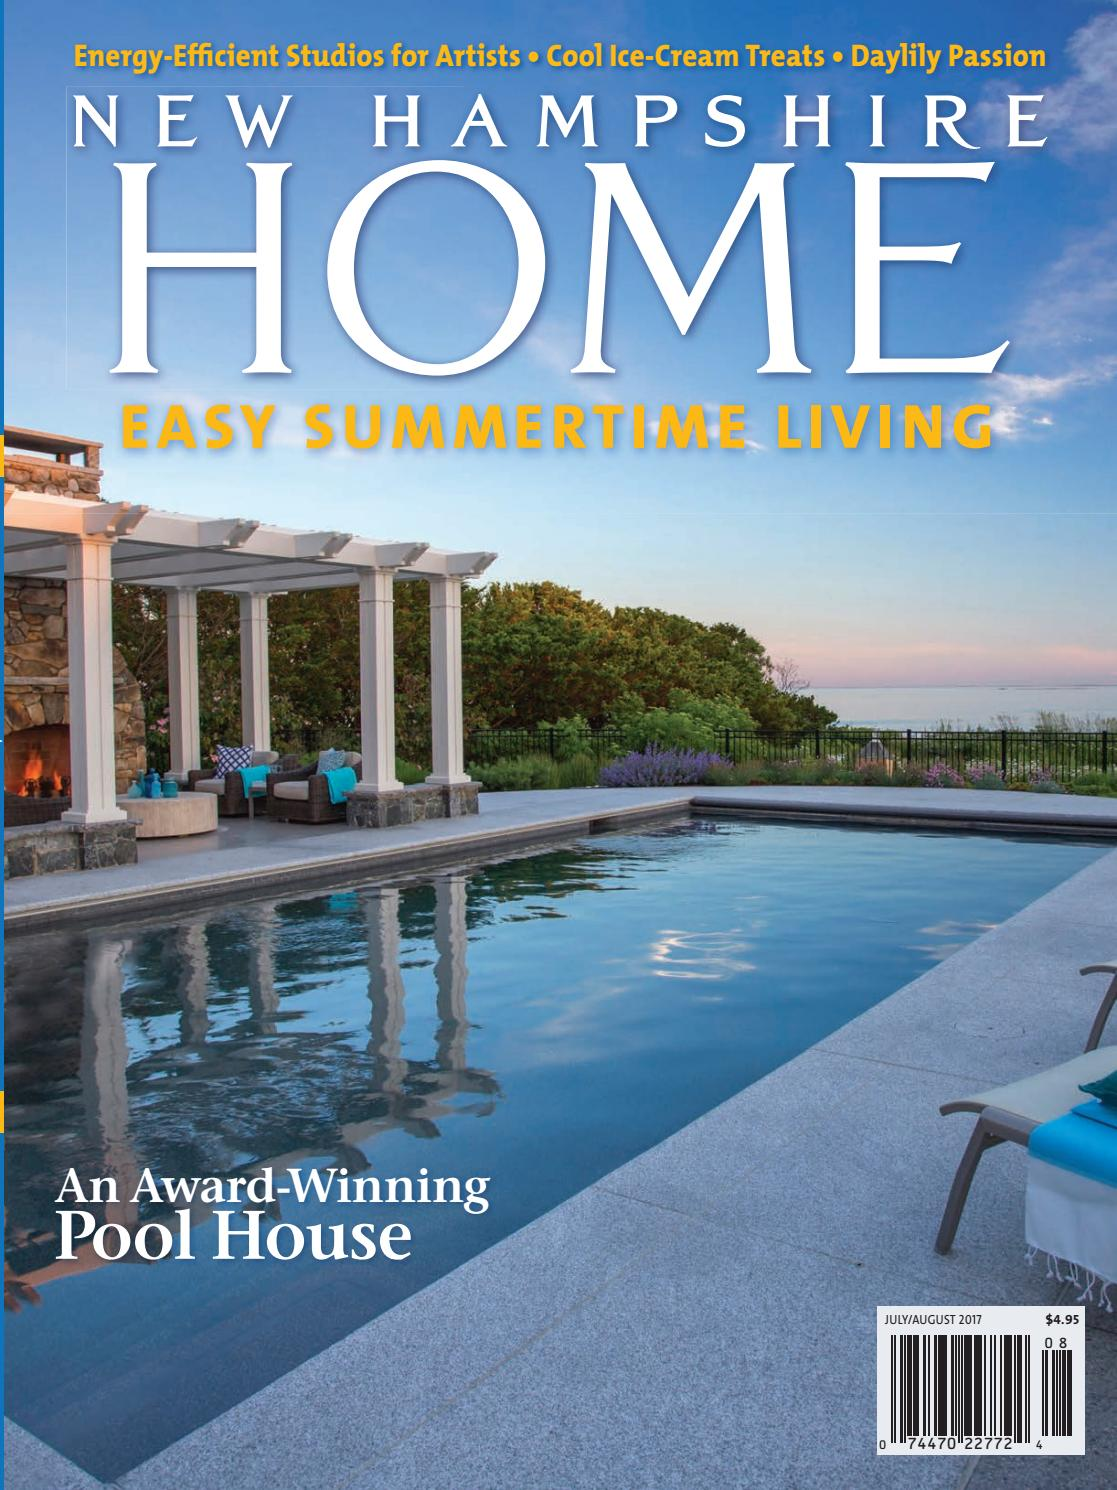 New Hampshire Home July-August 2017 by McLean Communications - issuu